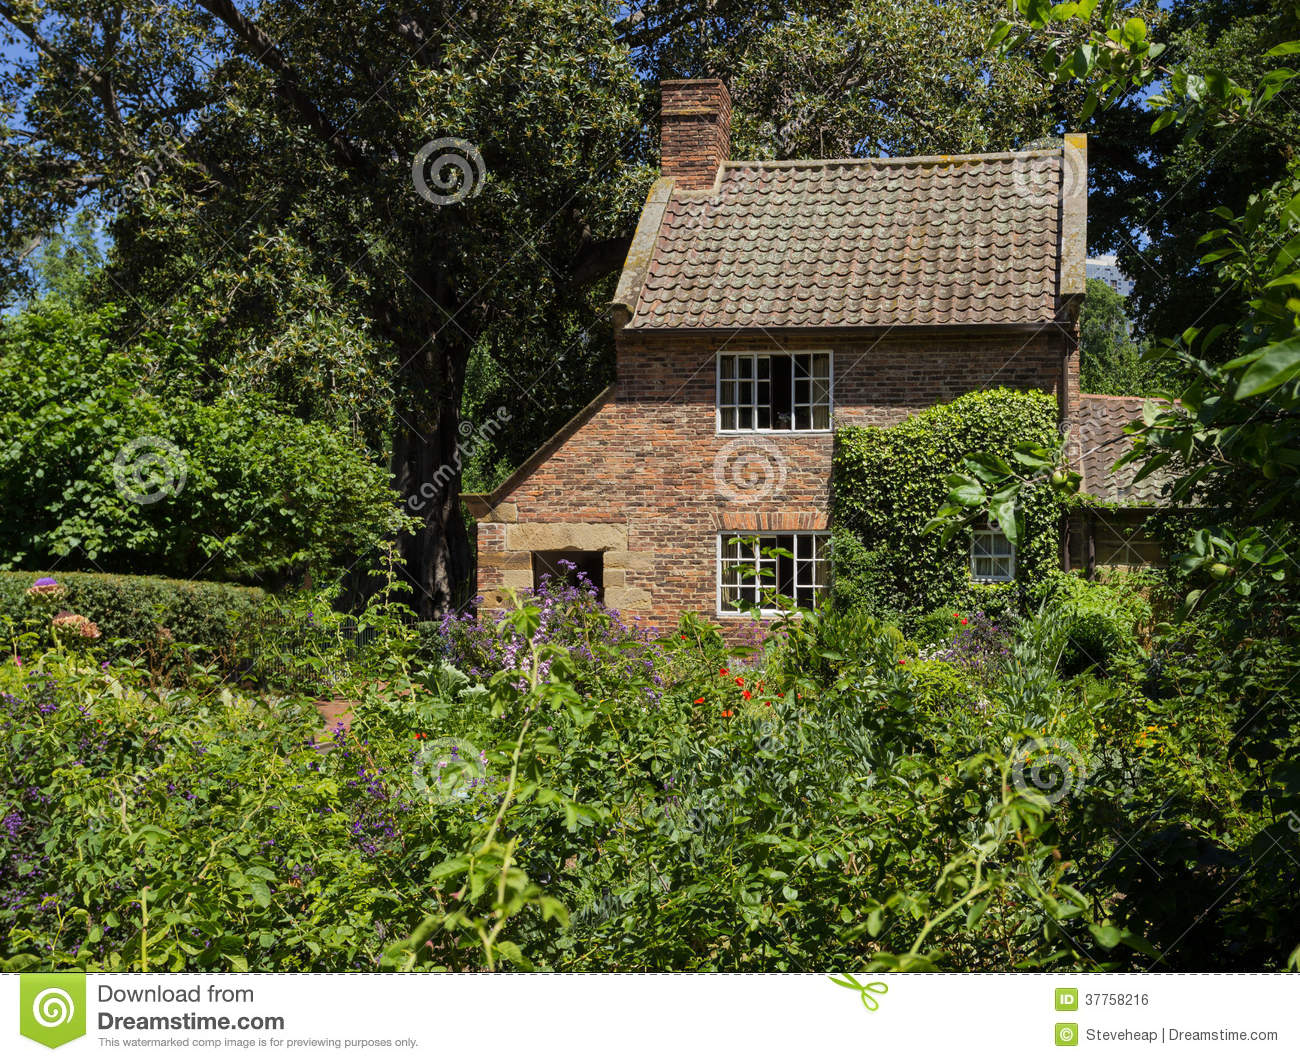 Cottage Garden Of Small Brick Home Stock Photo - Image of small ... for Small Brick Farmhouse  157uhy